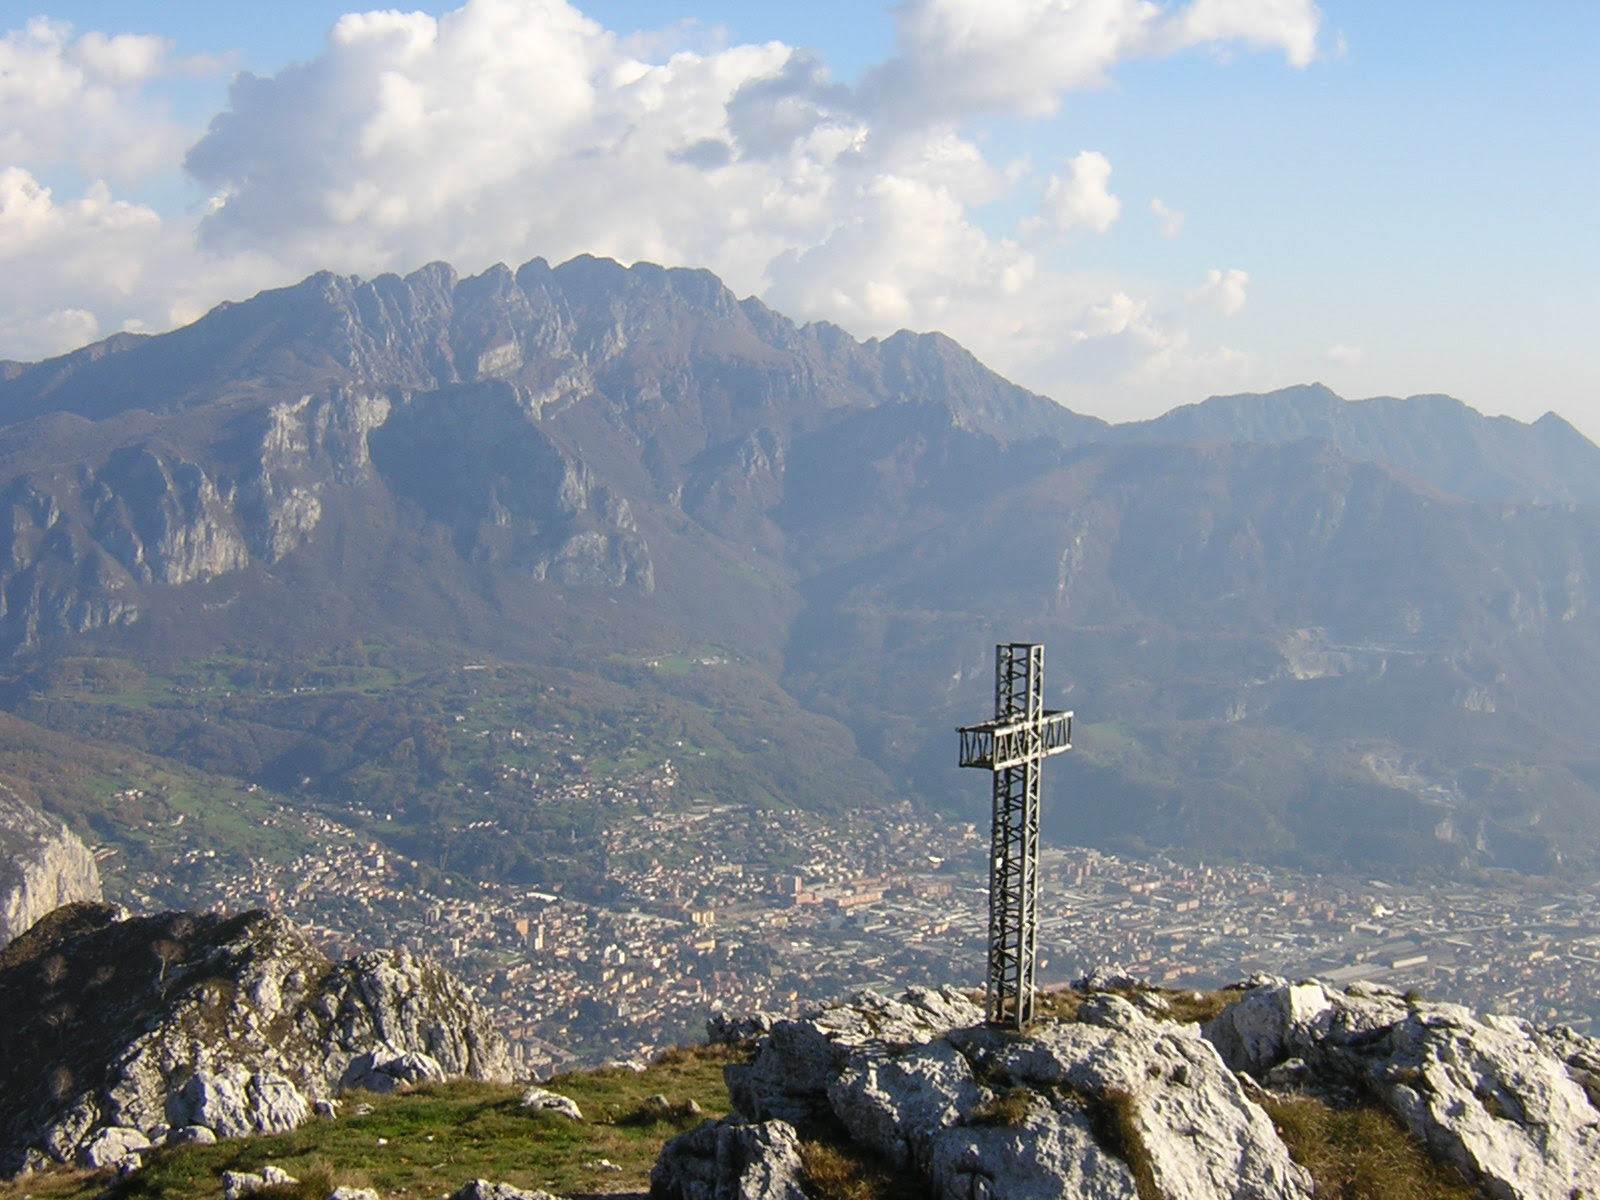 Visitsitaly Com Welcome To Lecco In The Lake District